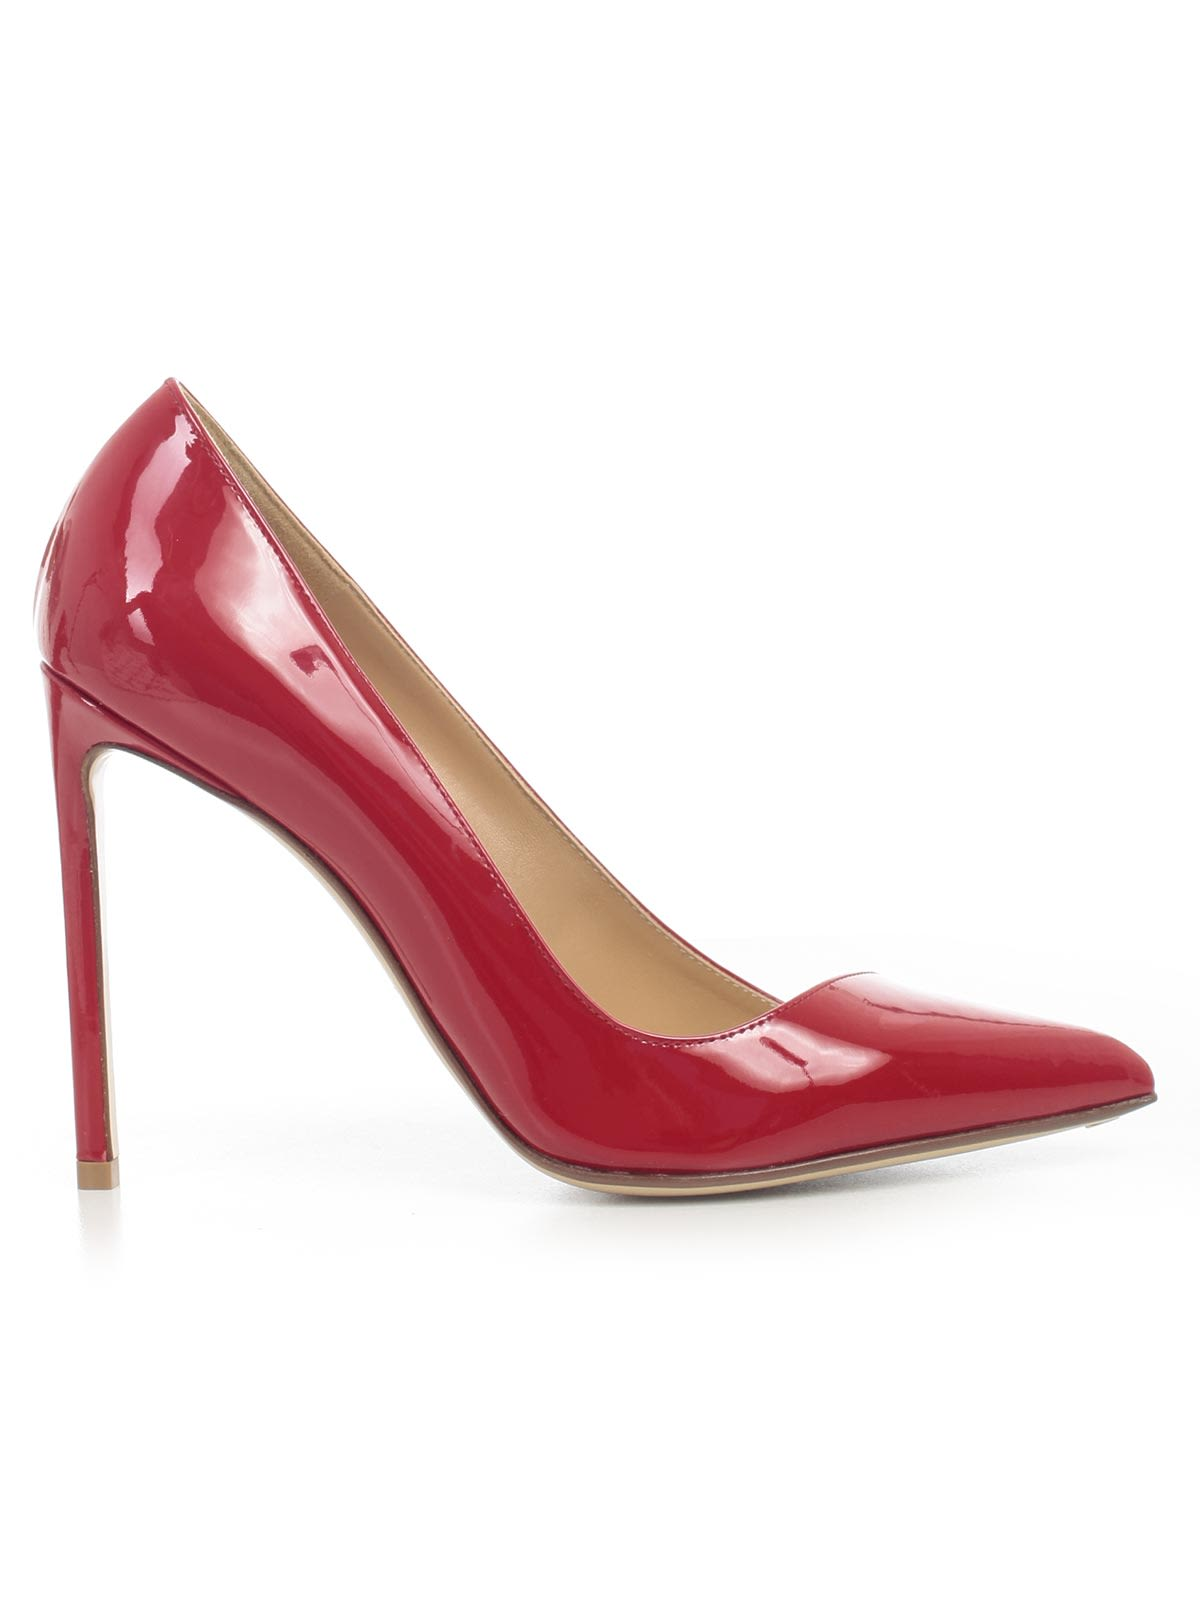 Asymmetric Line Pumps, Red